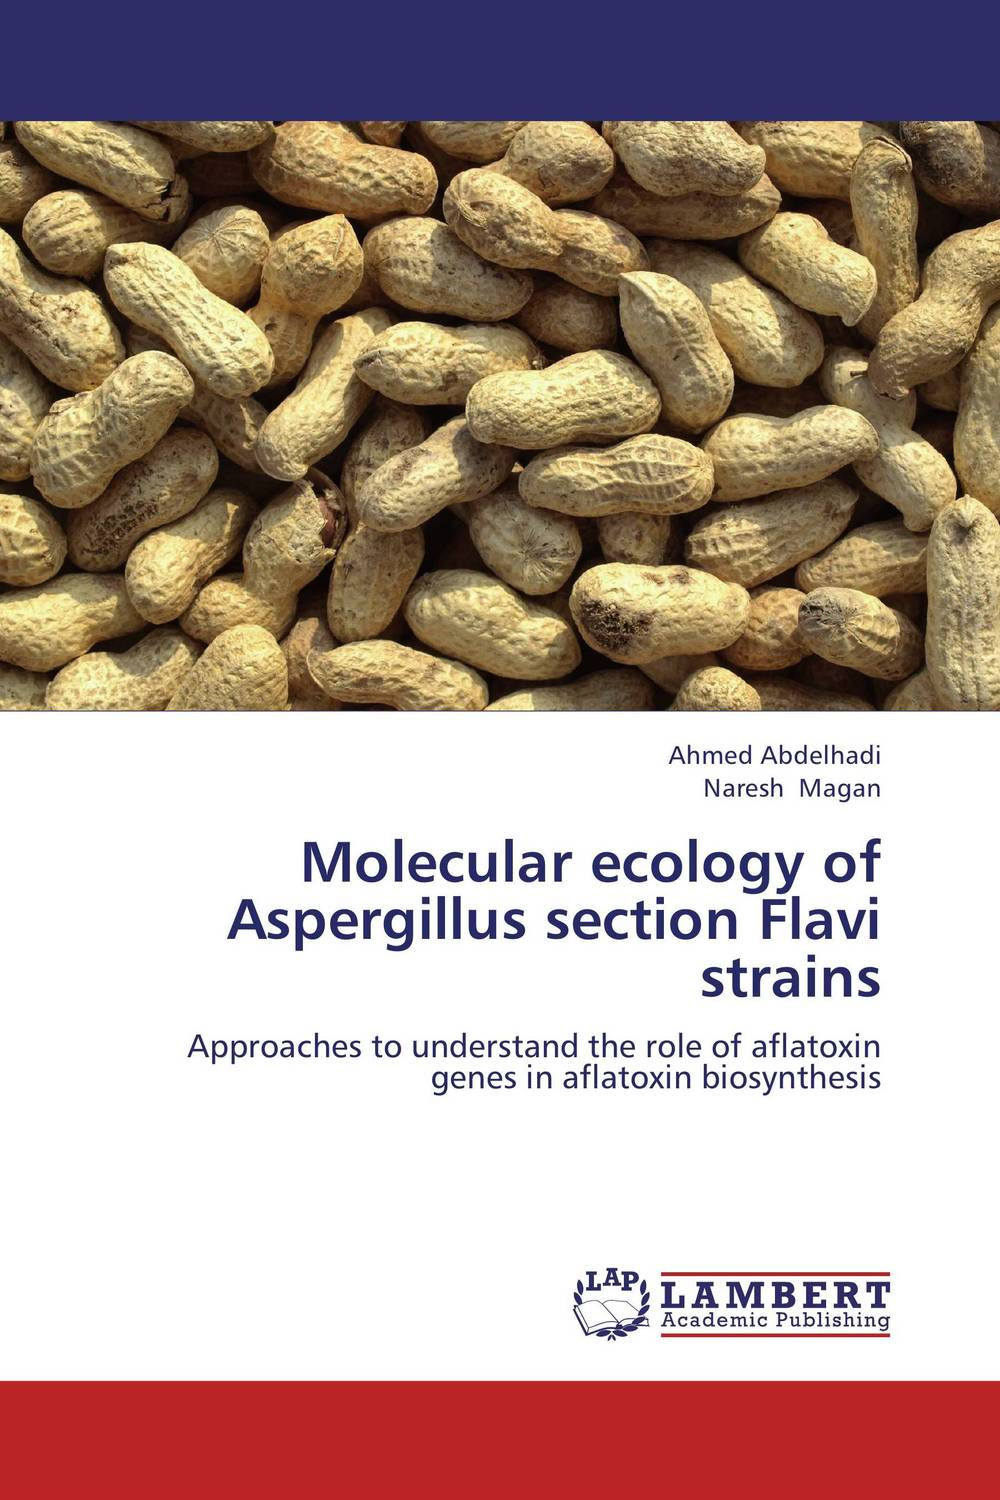 Molecular ecology of Aspergillus section Flavi strains purnima sareen sundeep kumar and rakesh singh molecular and pathological characterization of slow rusting in wheat